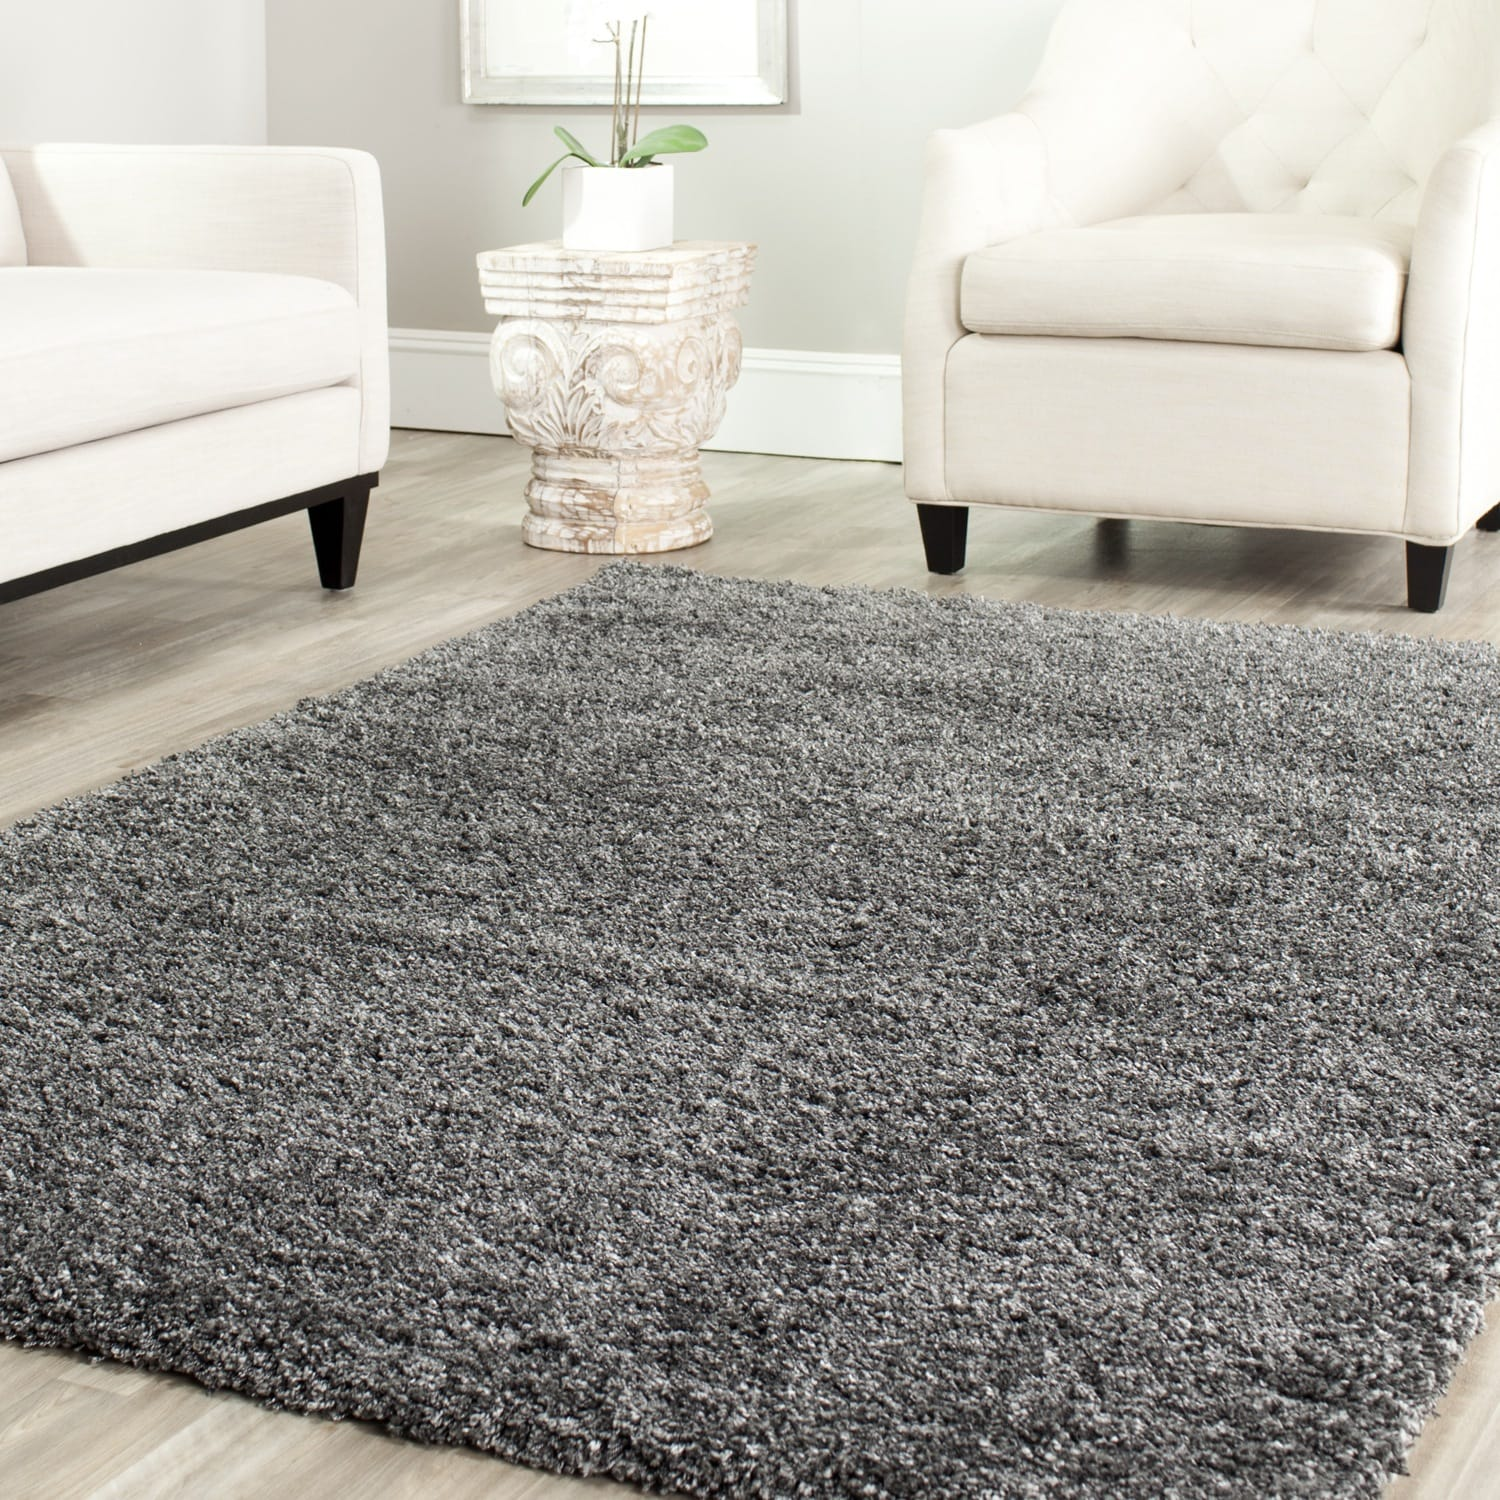 safavieh cozy solid dark grey shag rug overstock shopping great deals on safavieh 7x9